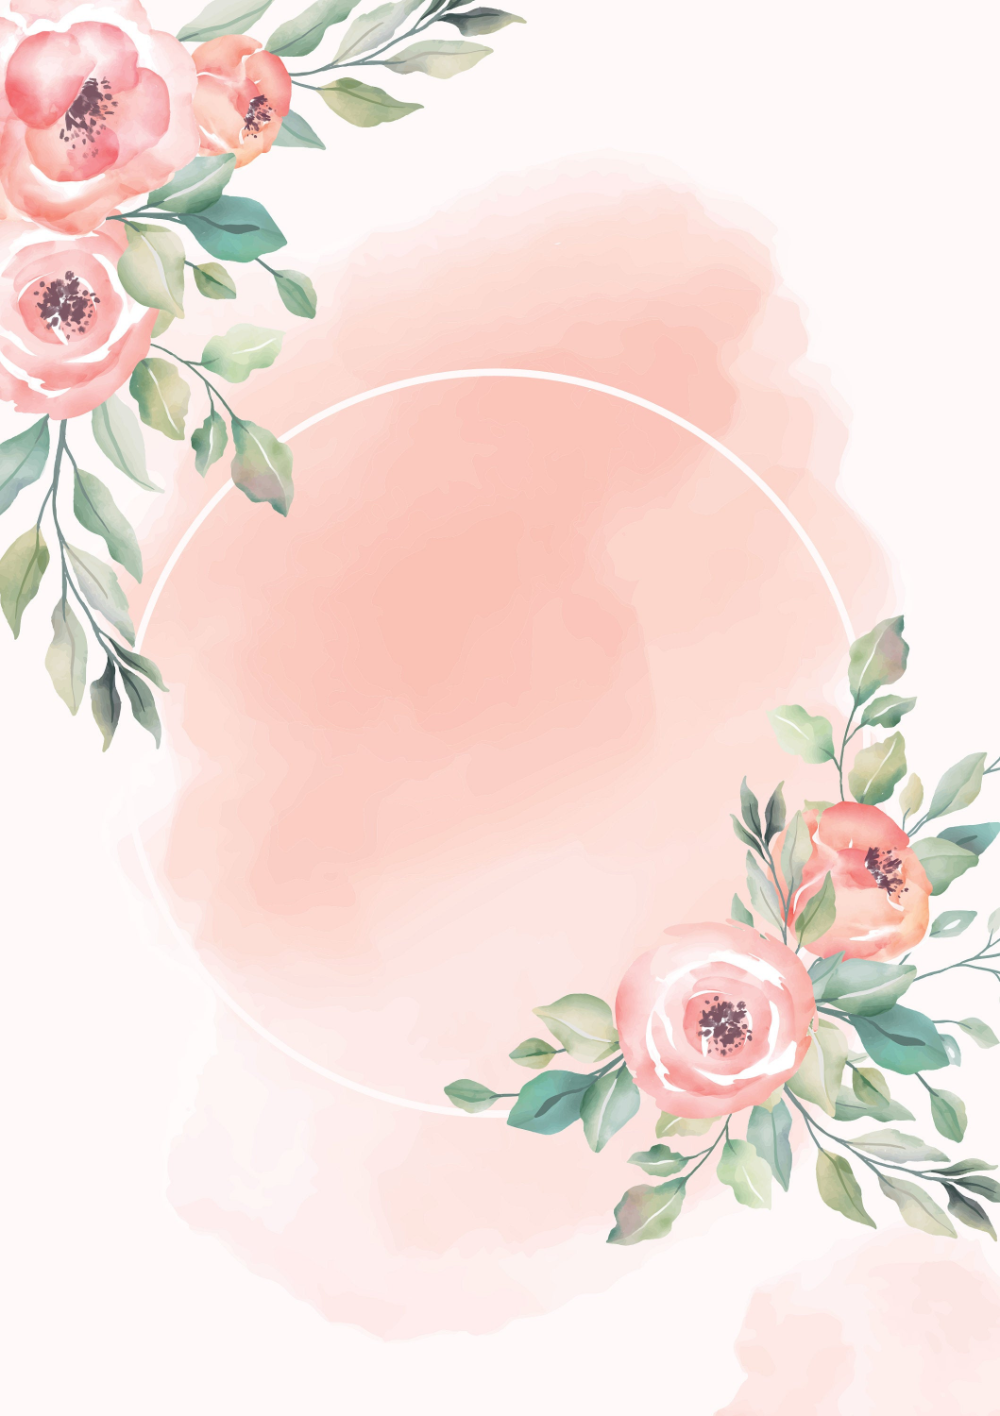 Straucher Roses Arrangement Rosa Rosen Anordnung Brautjunferkleider Rosa Ros In 2020 Rose Painting Floral Nursery Print Flower Background Wallpaper